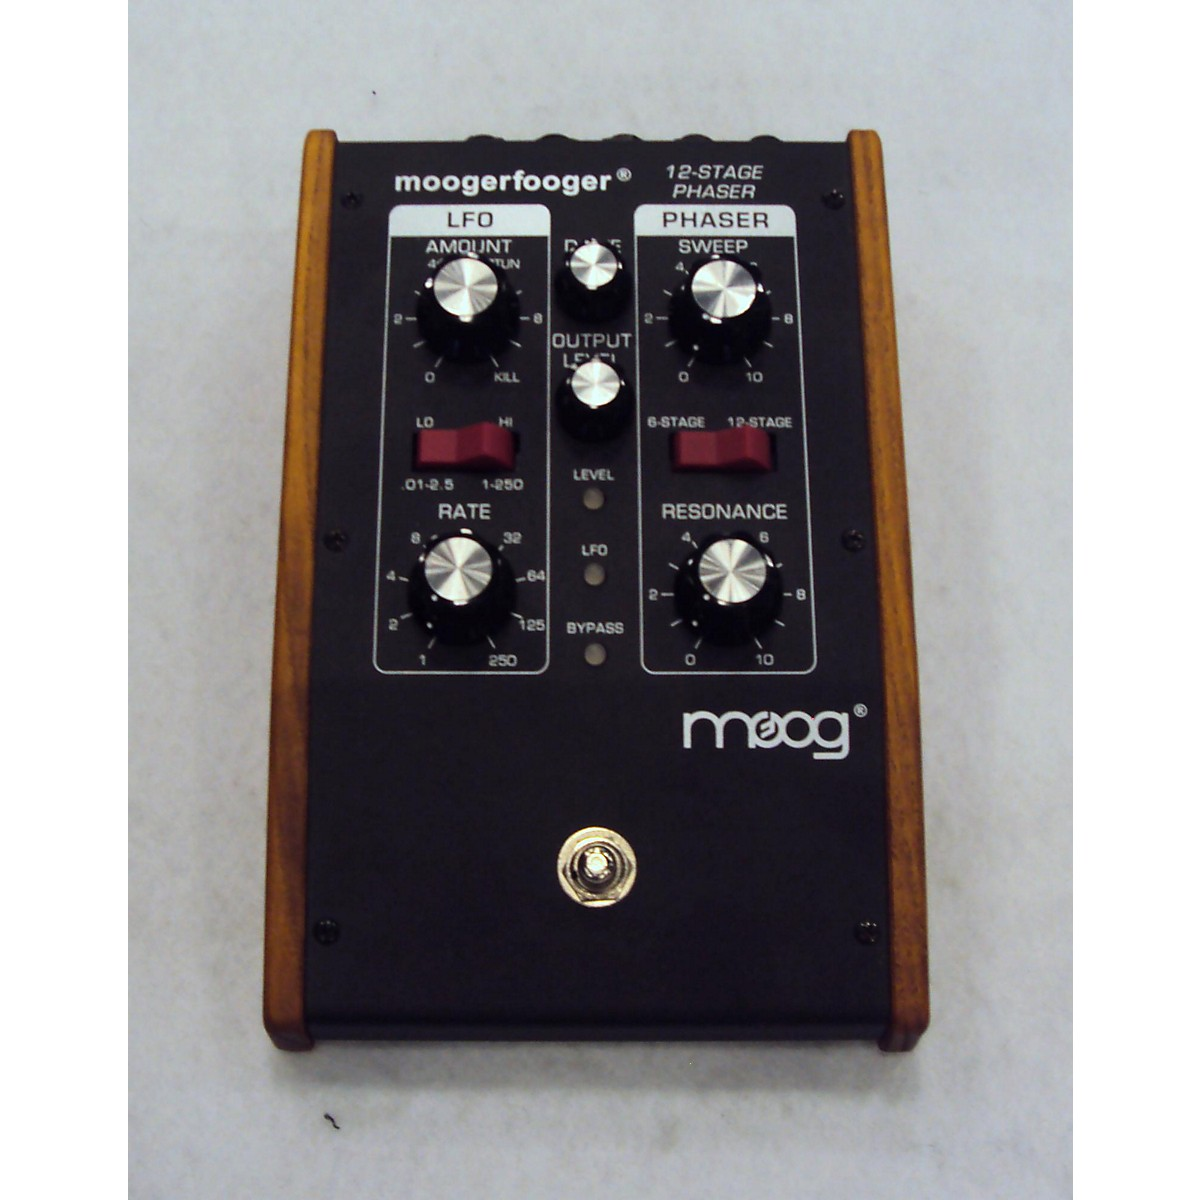 Moog MF-103 Effect Pedal